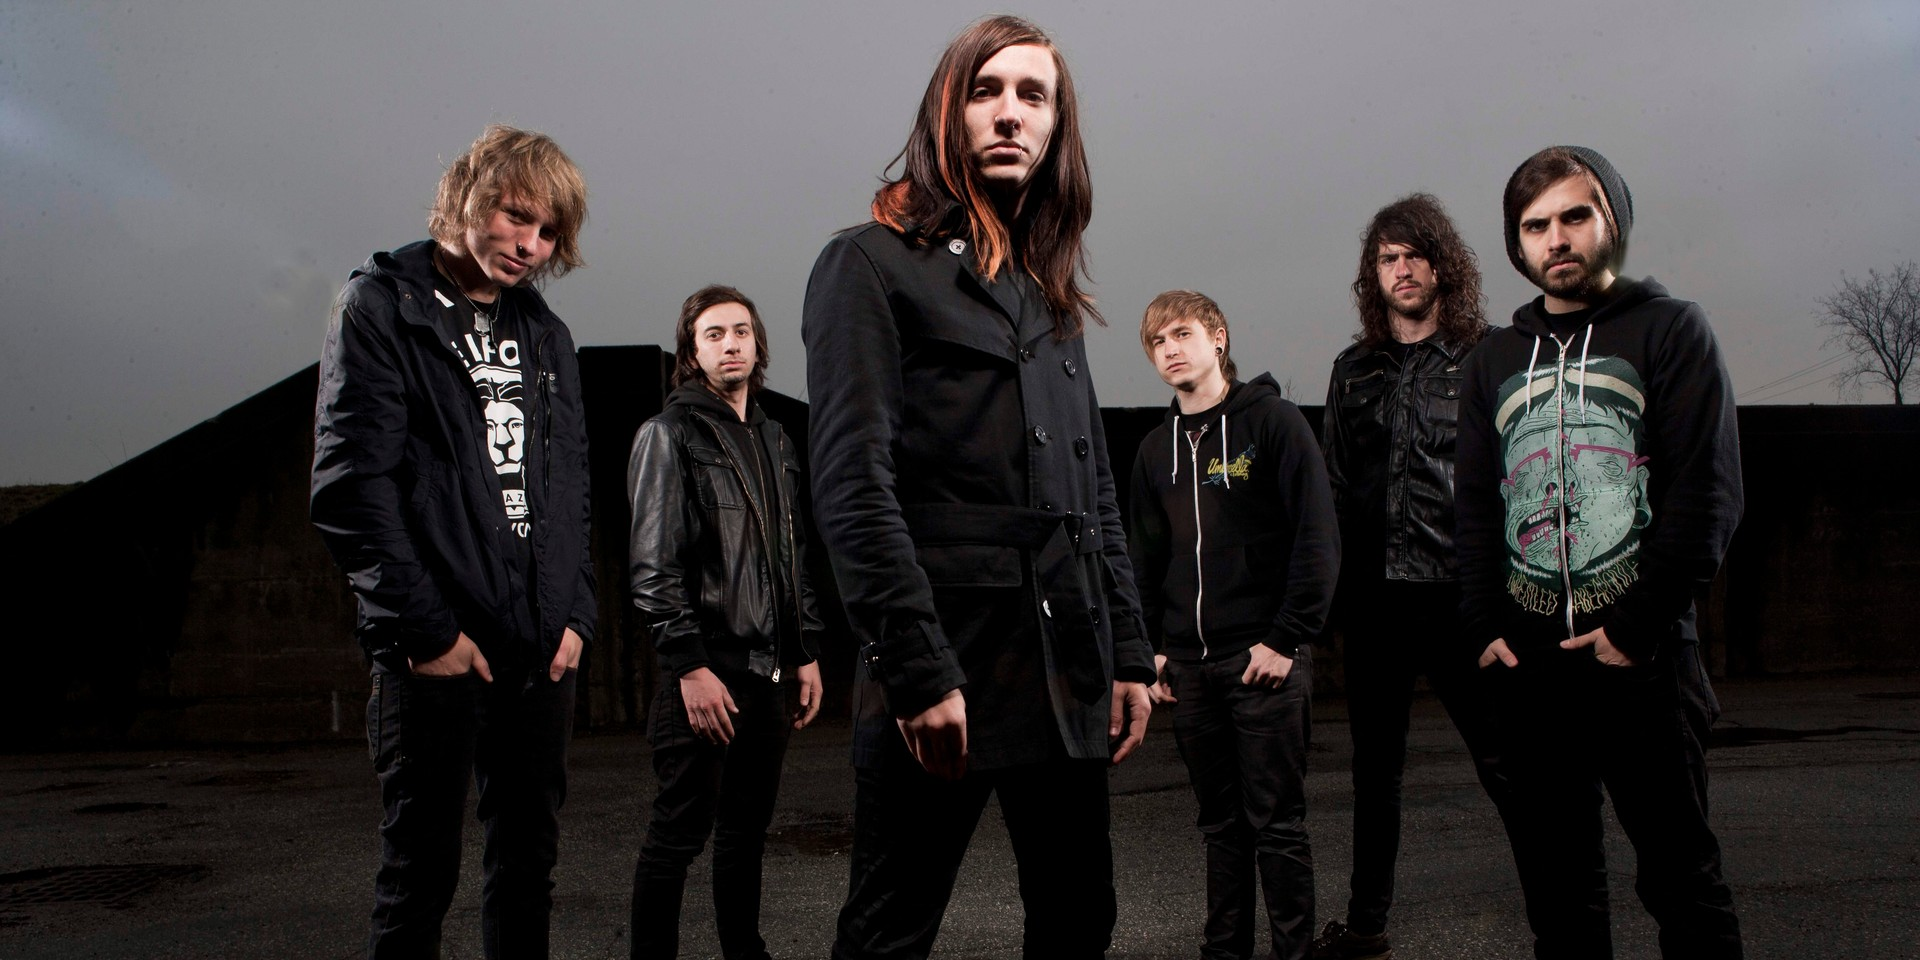 Rock The Underworld packs a serious metalcore punch with Unearth, The Word Alive, I See Stars & Crystal Lake